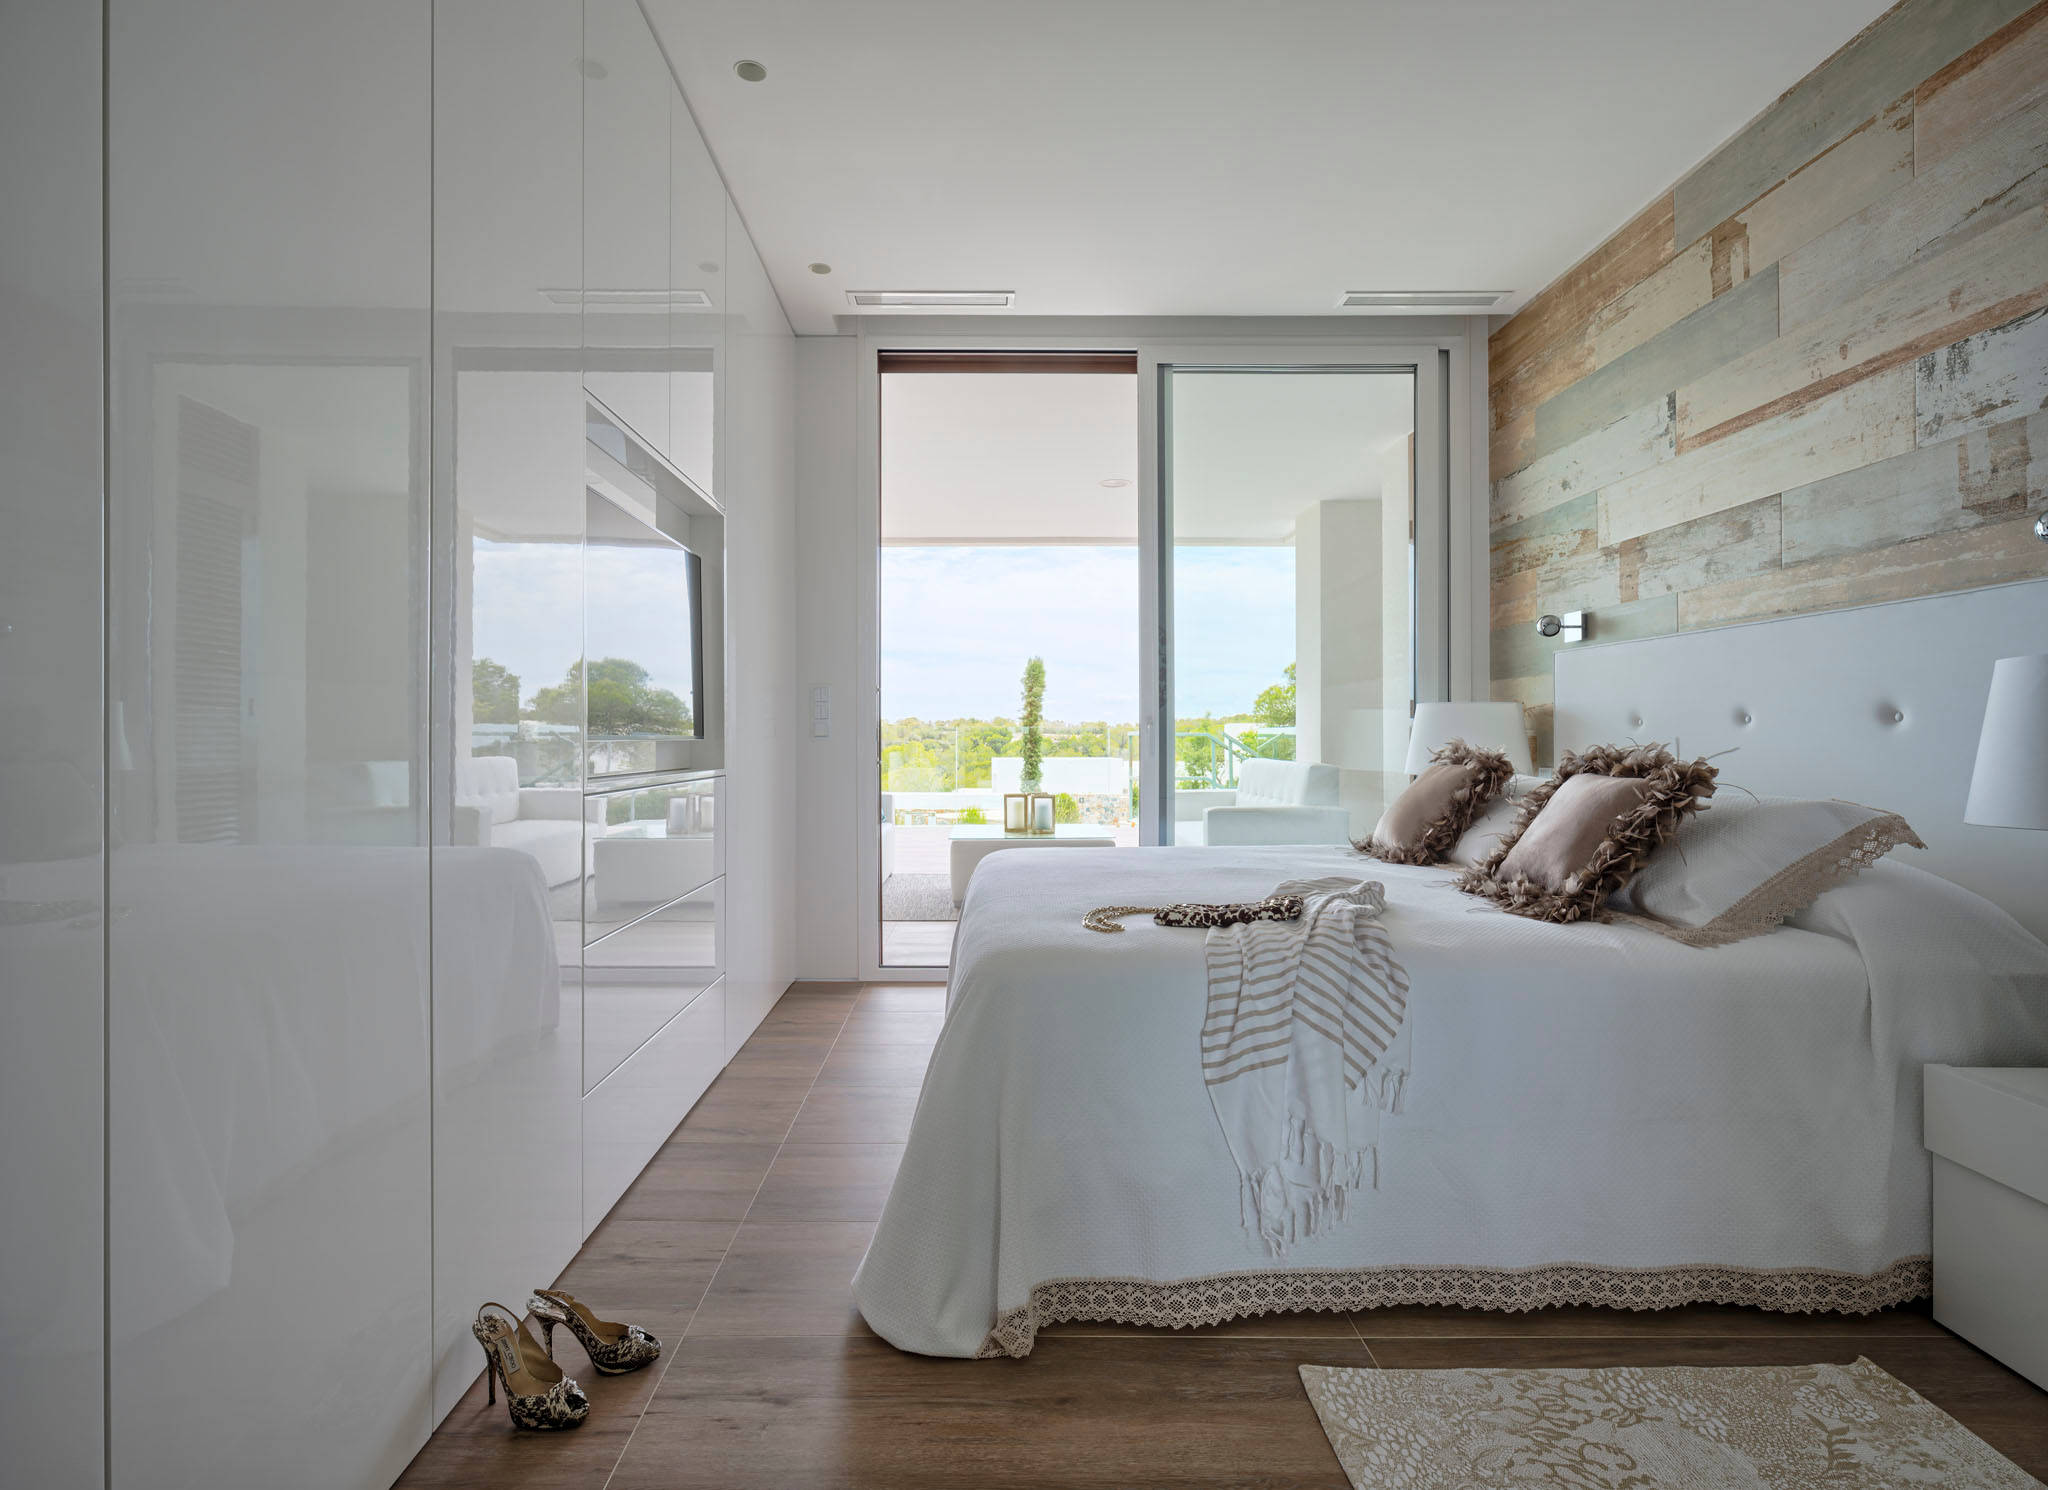 75 Beautiful Gray Bedroom With Brown Walls Pictures Ideas February 2021 Houzz